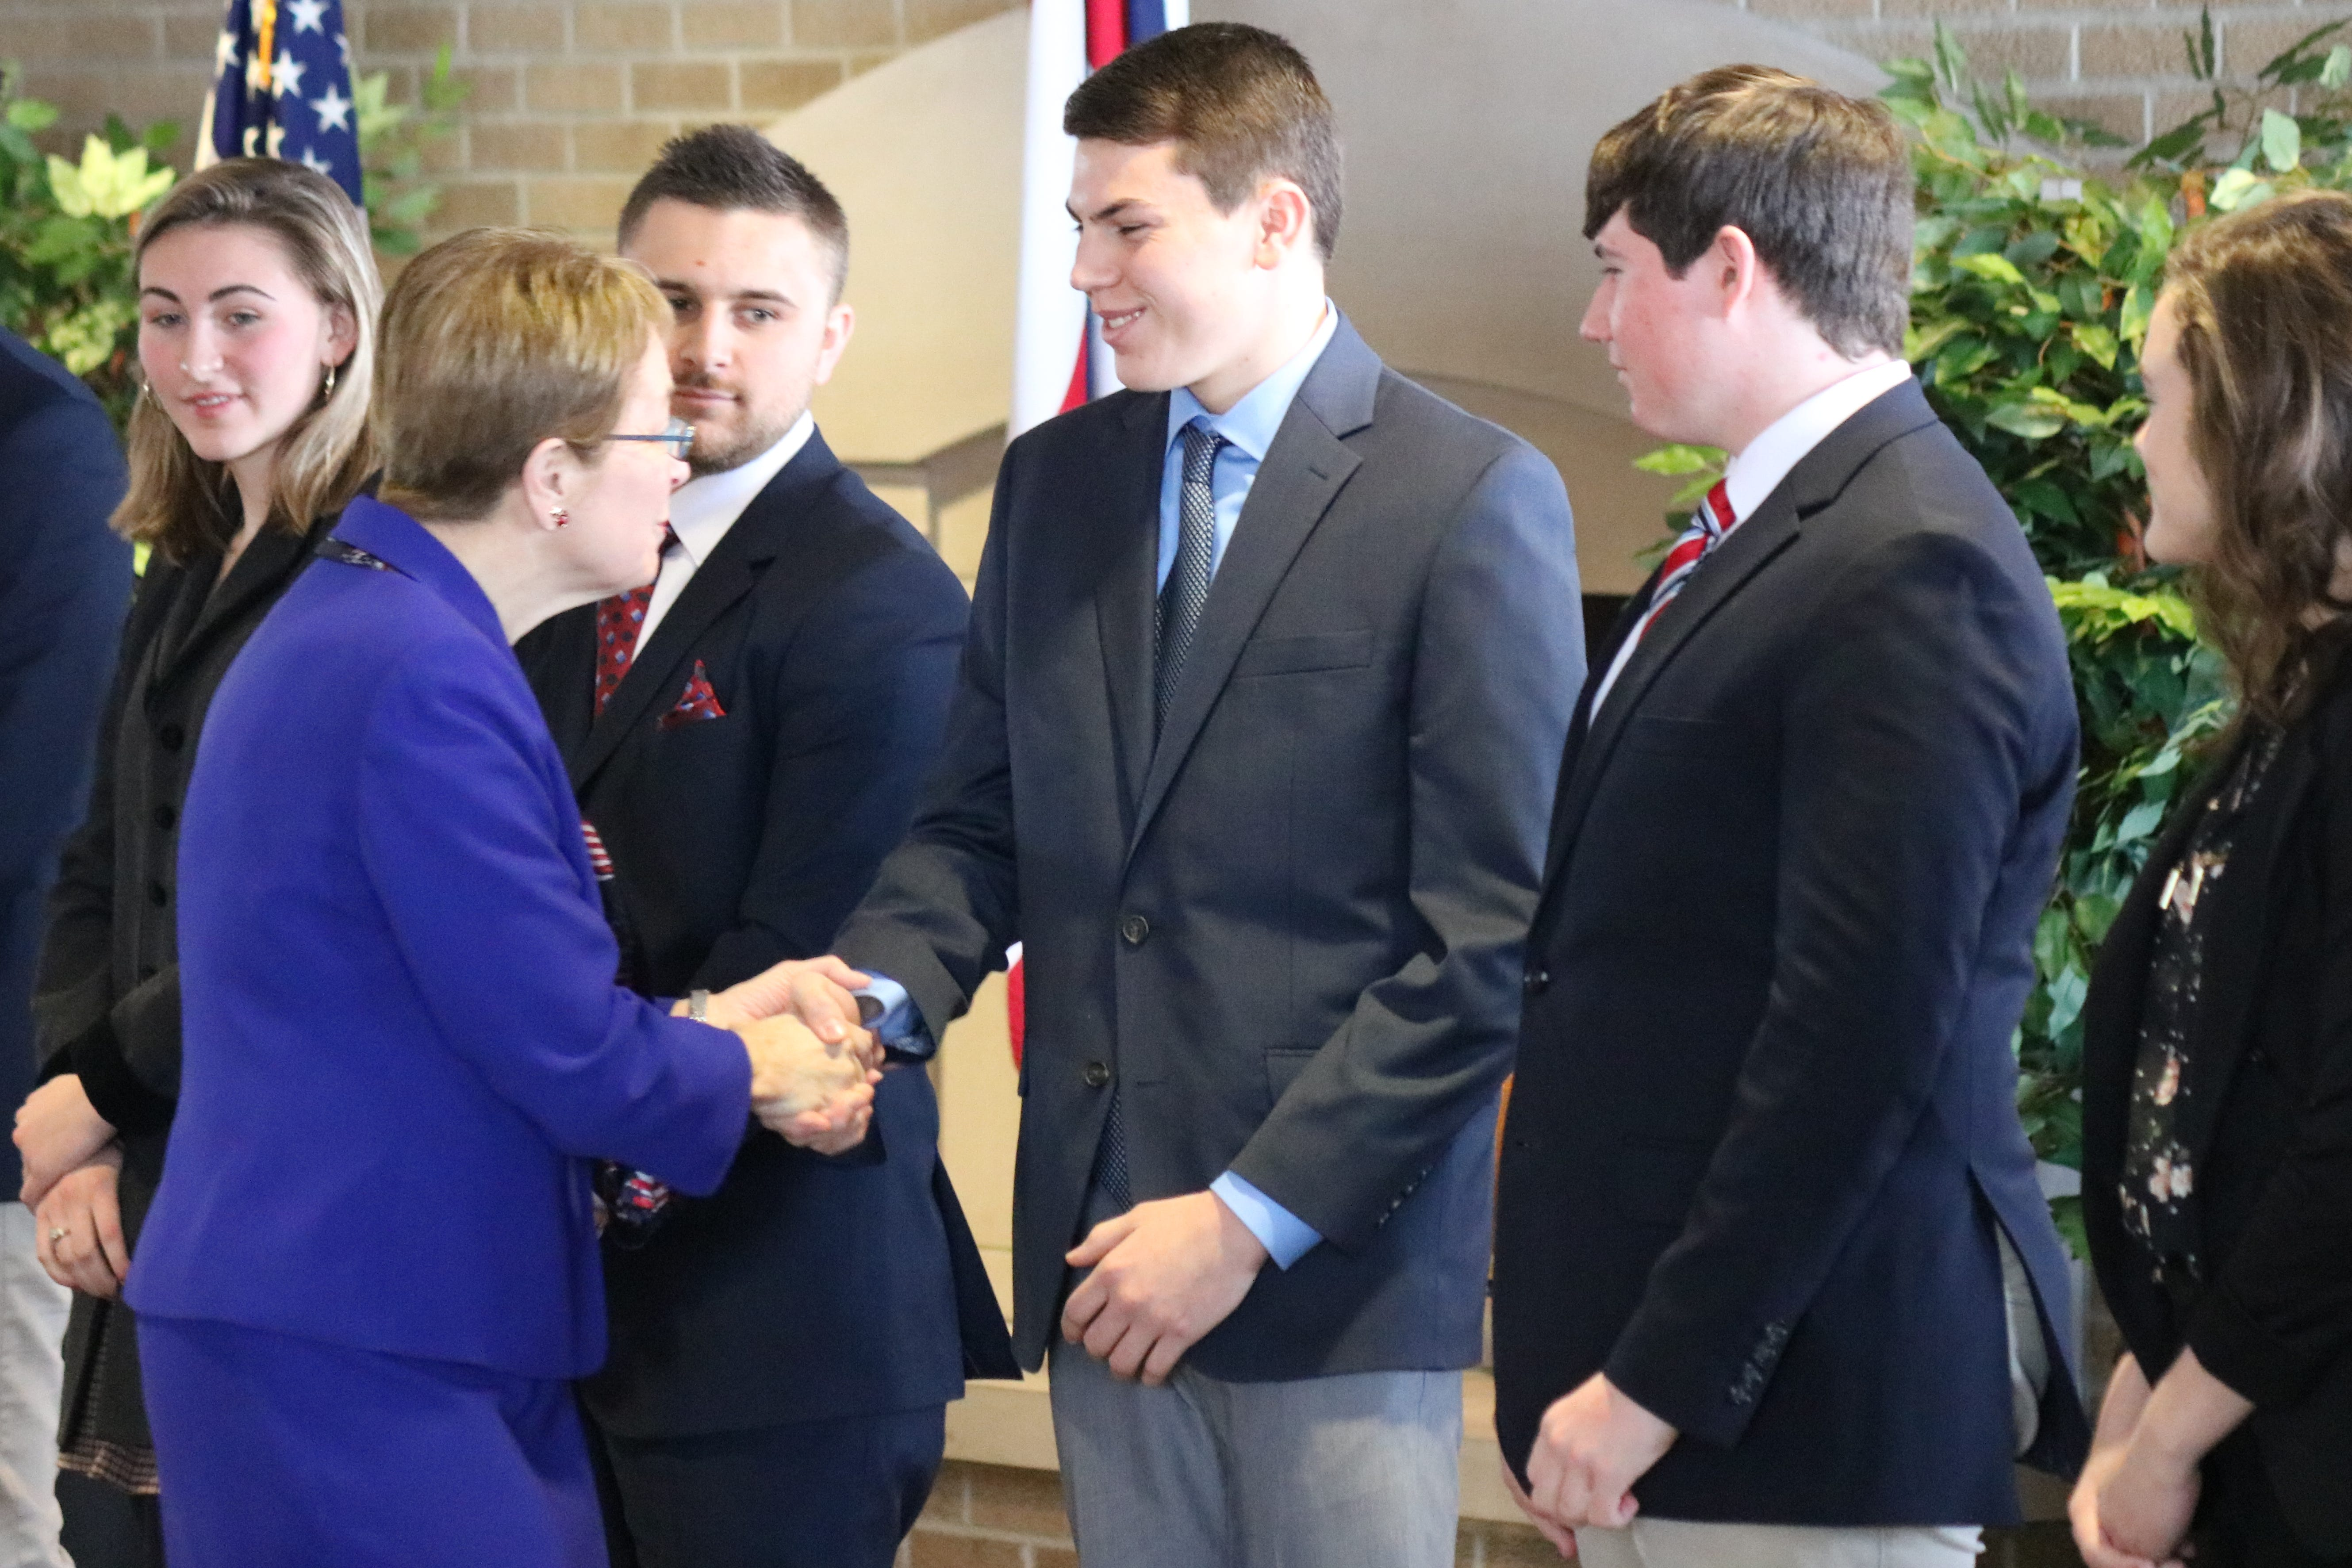 U.S. Rep. Marcy Kaptur, D-Toledo, congratulates the alternate service academy nominees for the Class of 2023 on Saturday at Camp Perry.